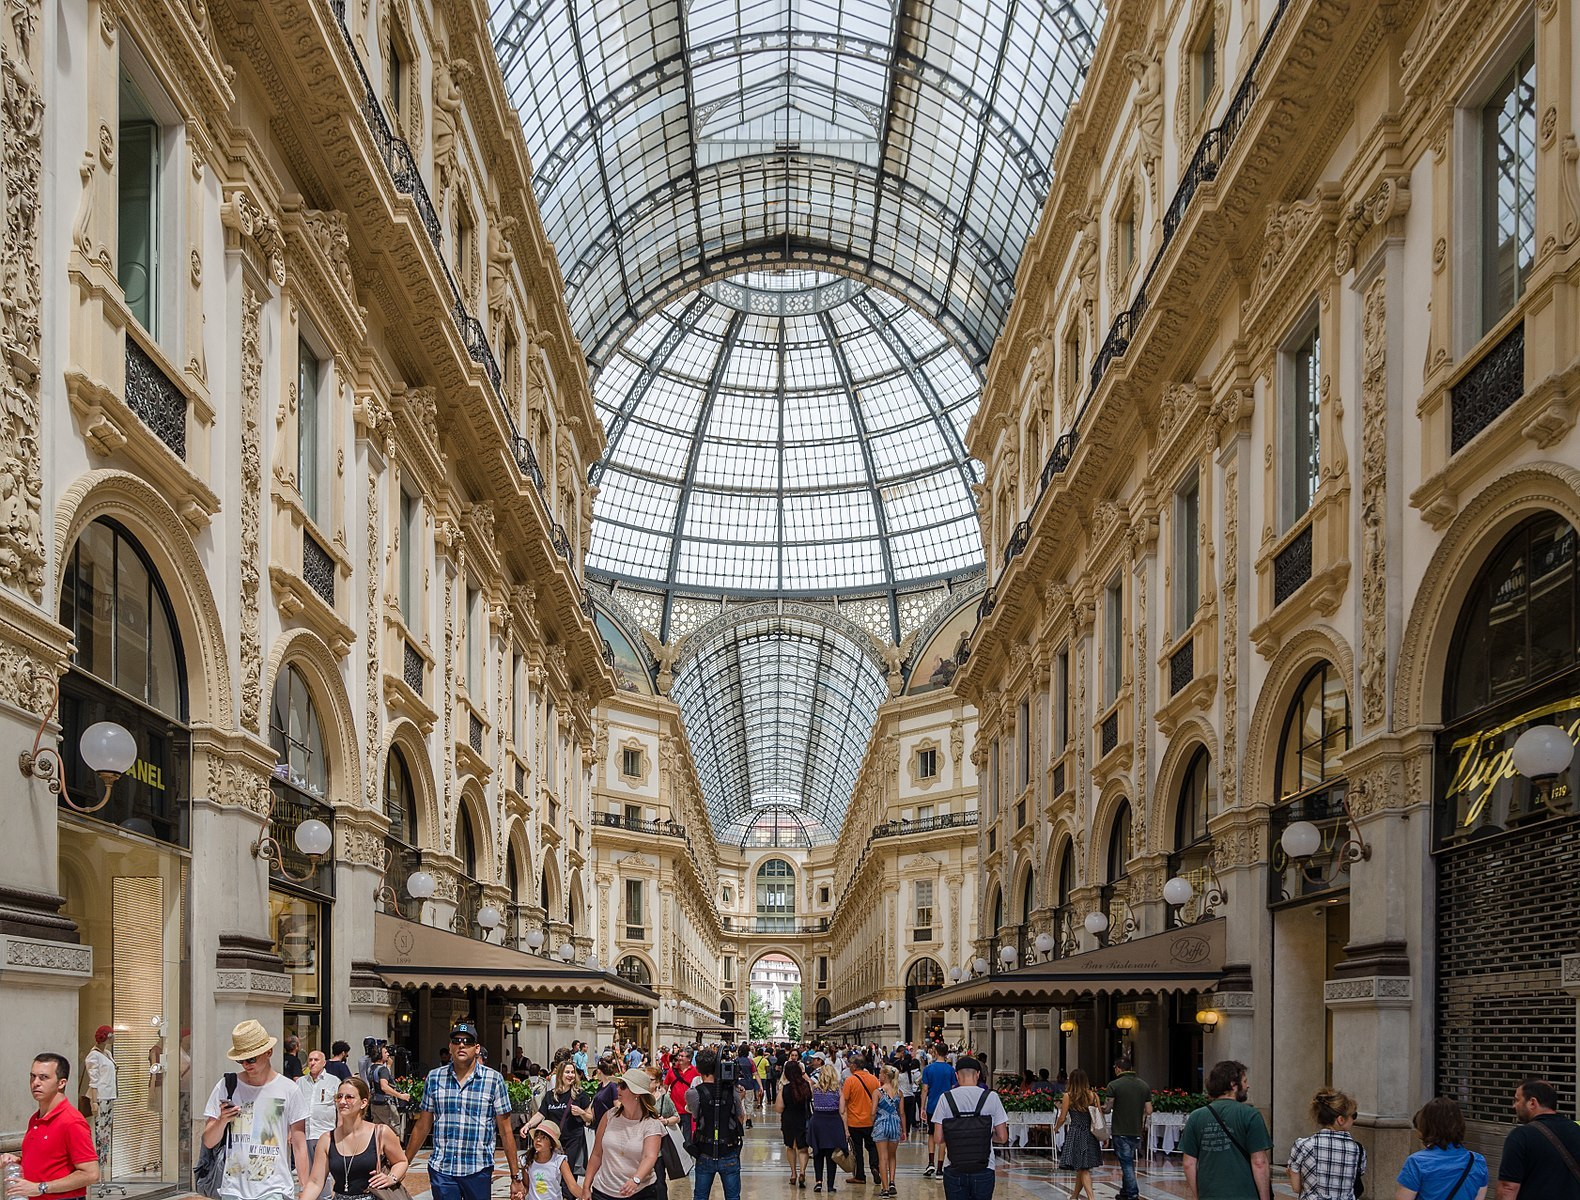 Milan's must-see attractions